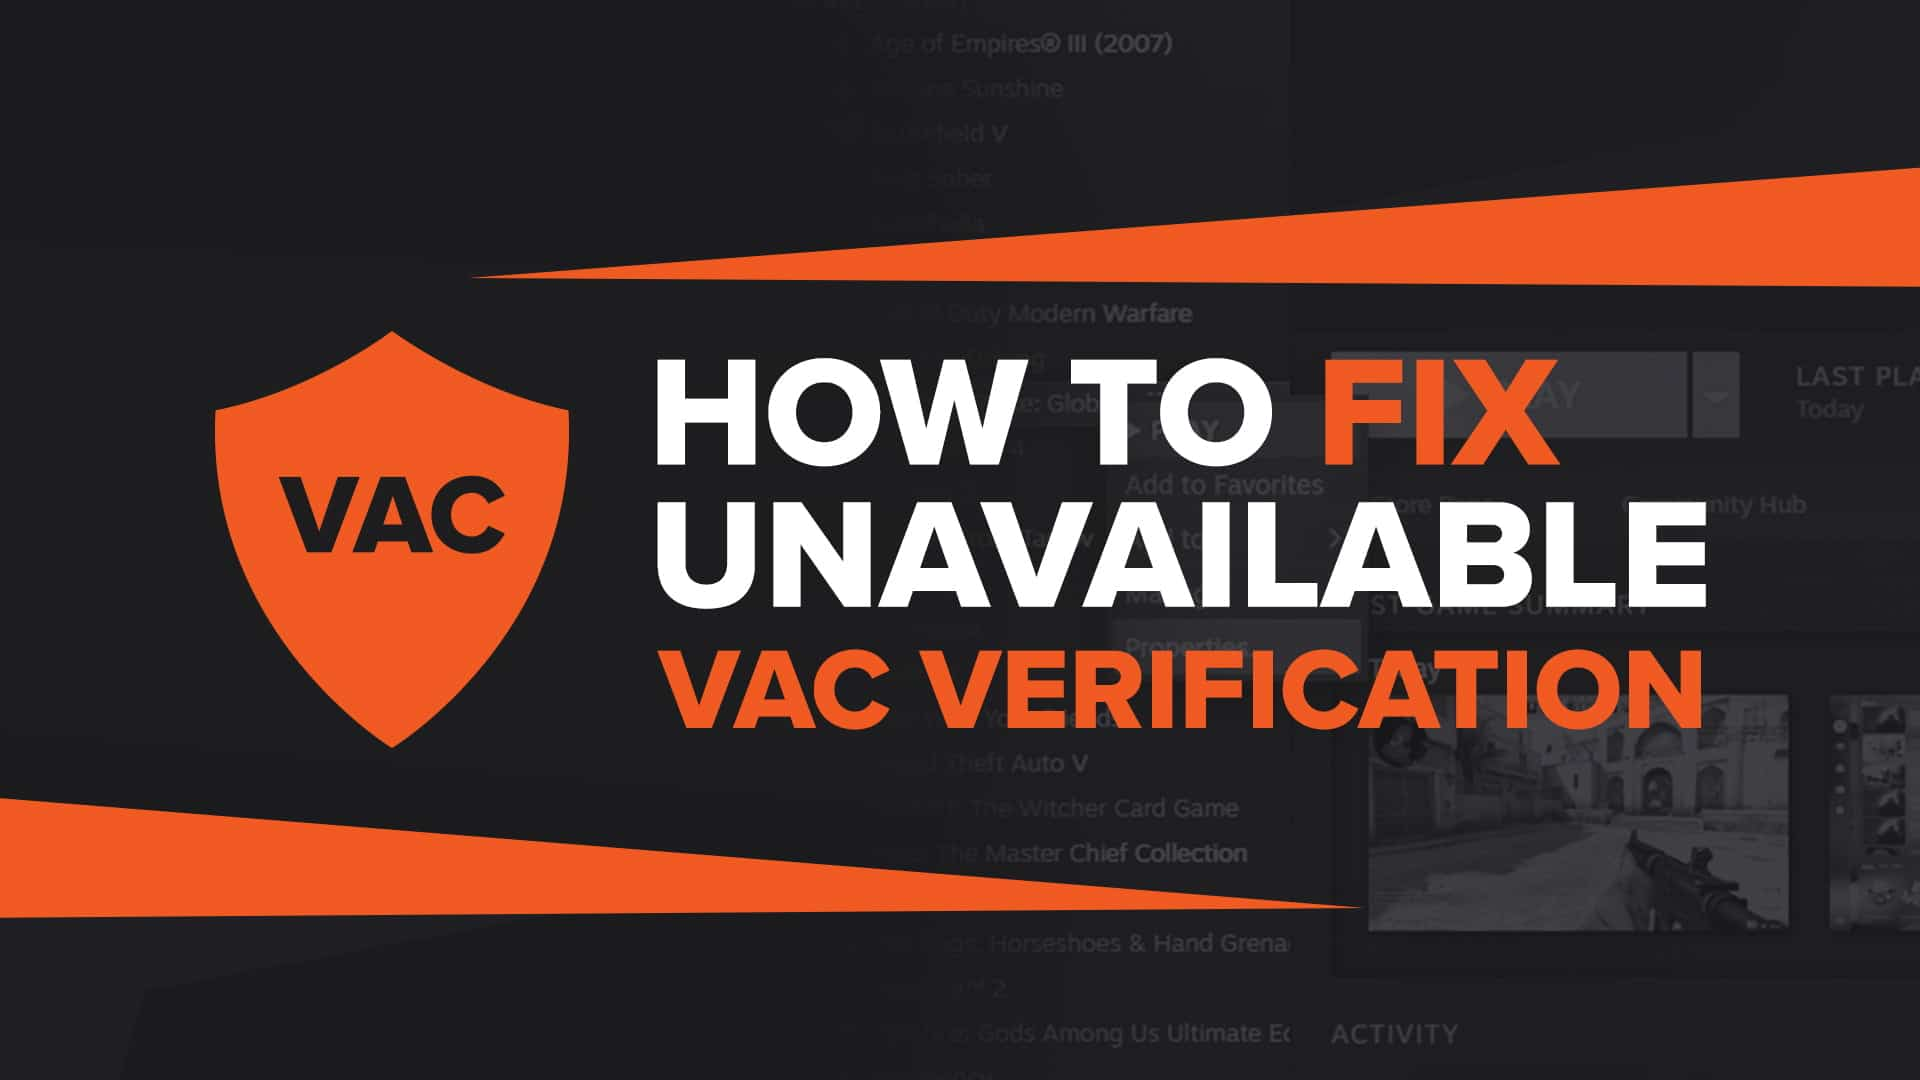 Fix VAC was unable to verify game session